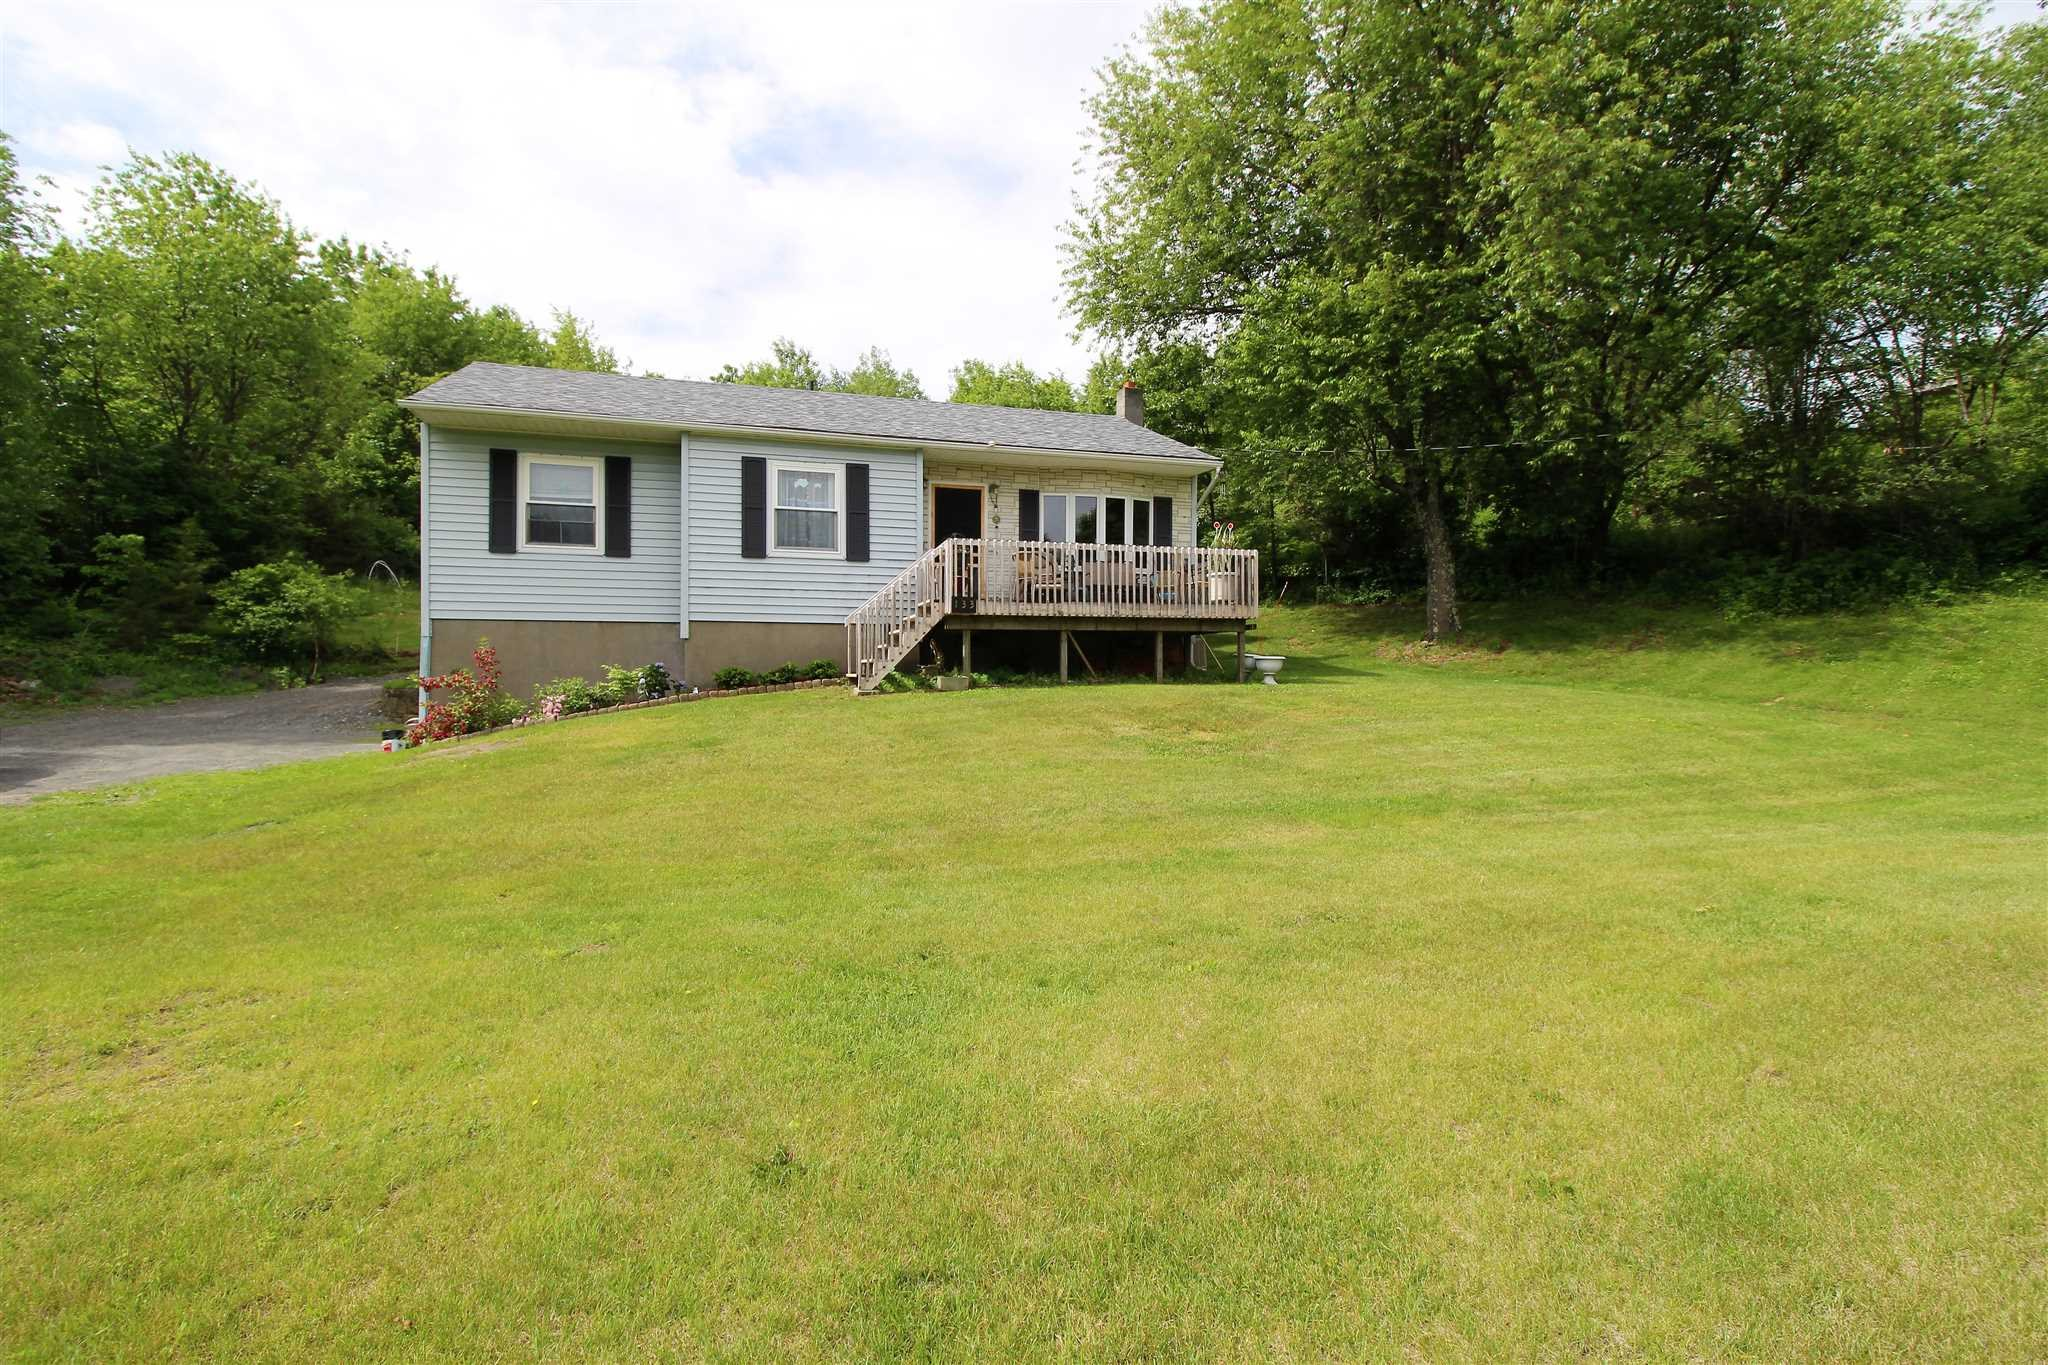 Single Family Home for Sale at 133 MT. ZION ROAD 133 MT. ZION ROAD Marlborough, New York 12542 United States